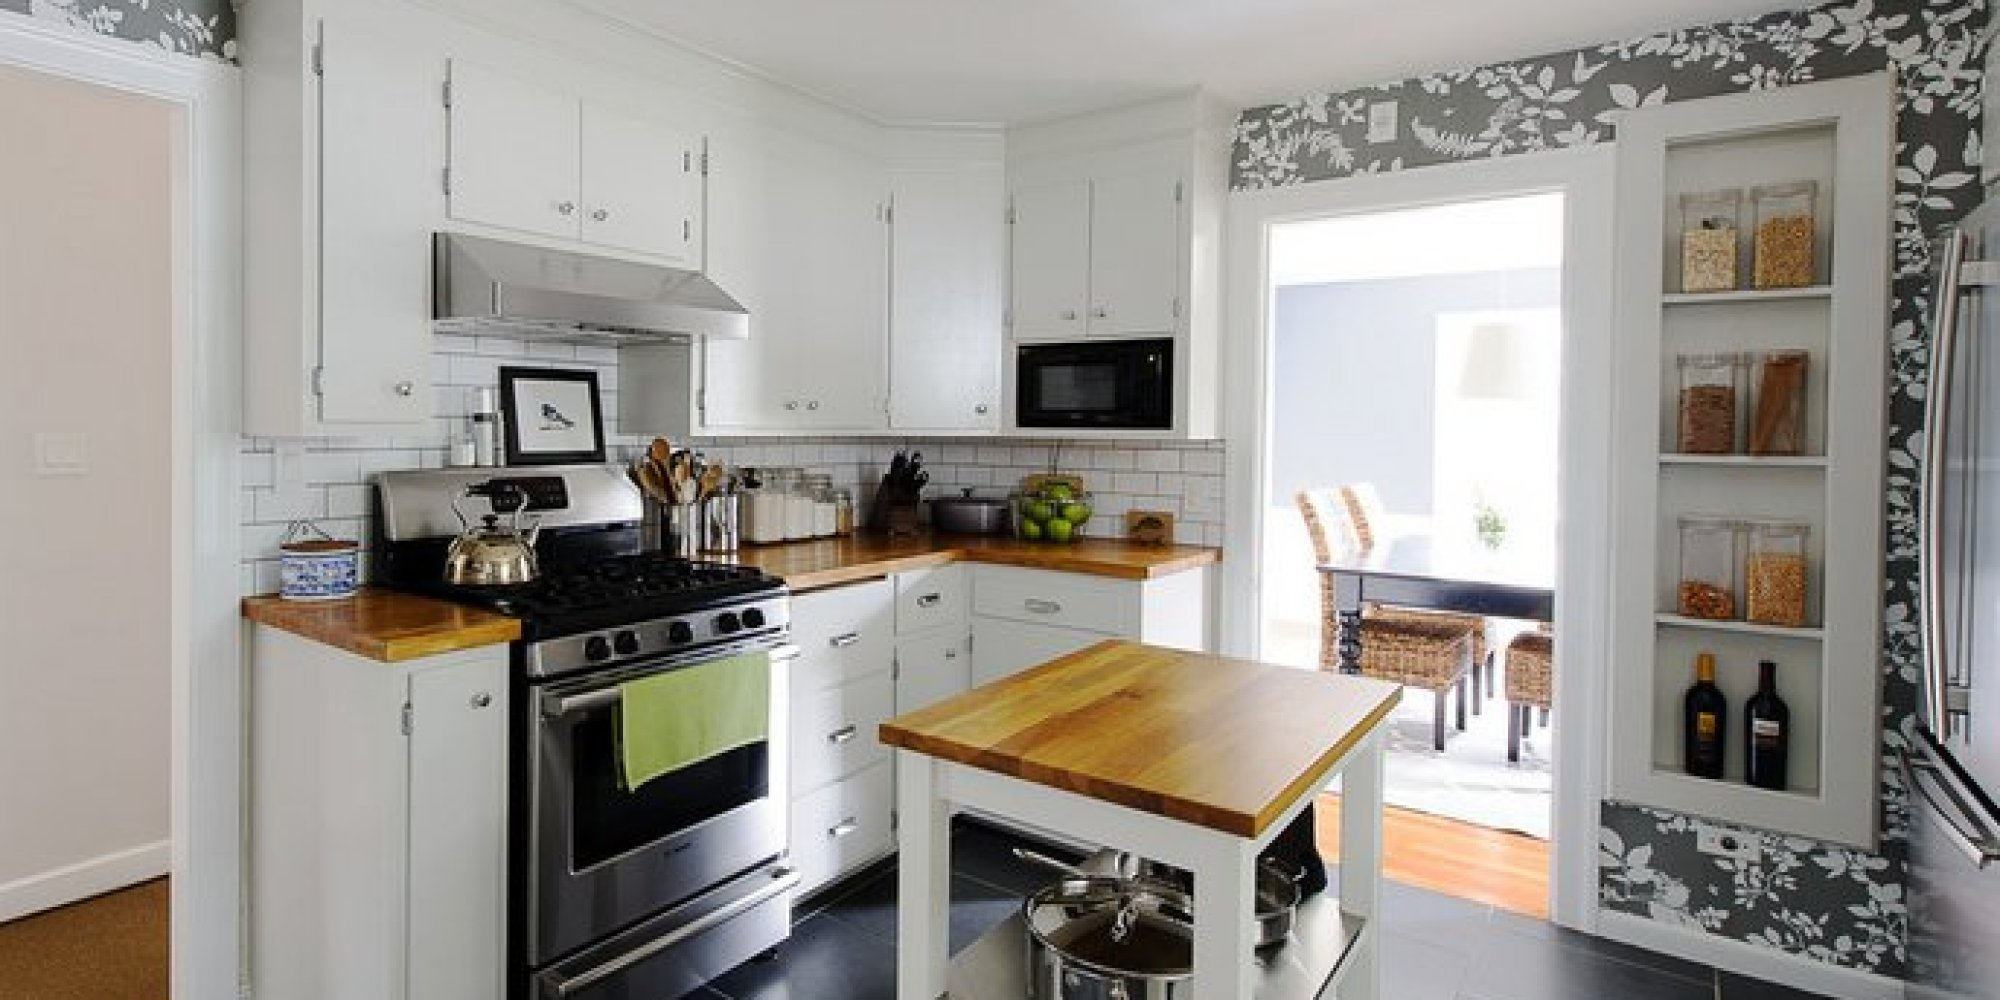 19 inexpensive ways to fix up your kitchen photos huffpost solutioingenieria Image collections